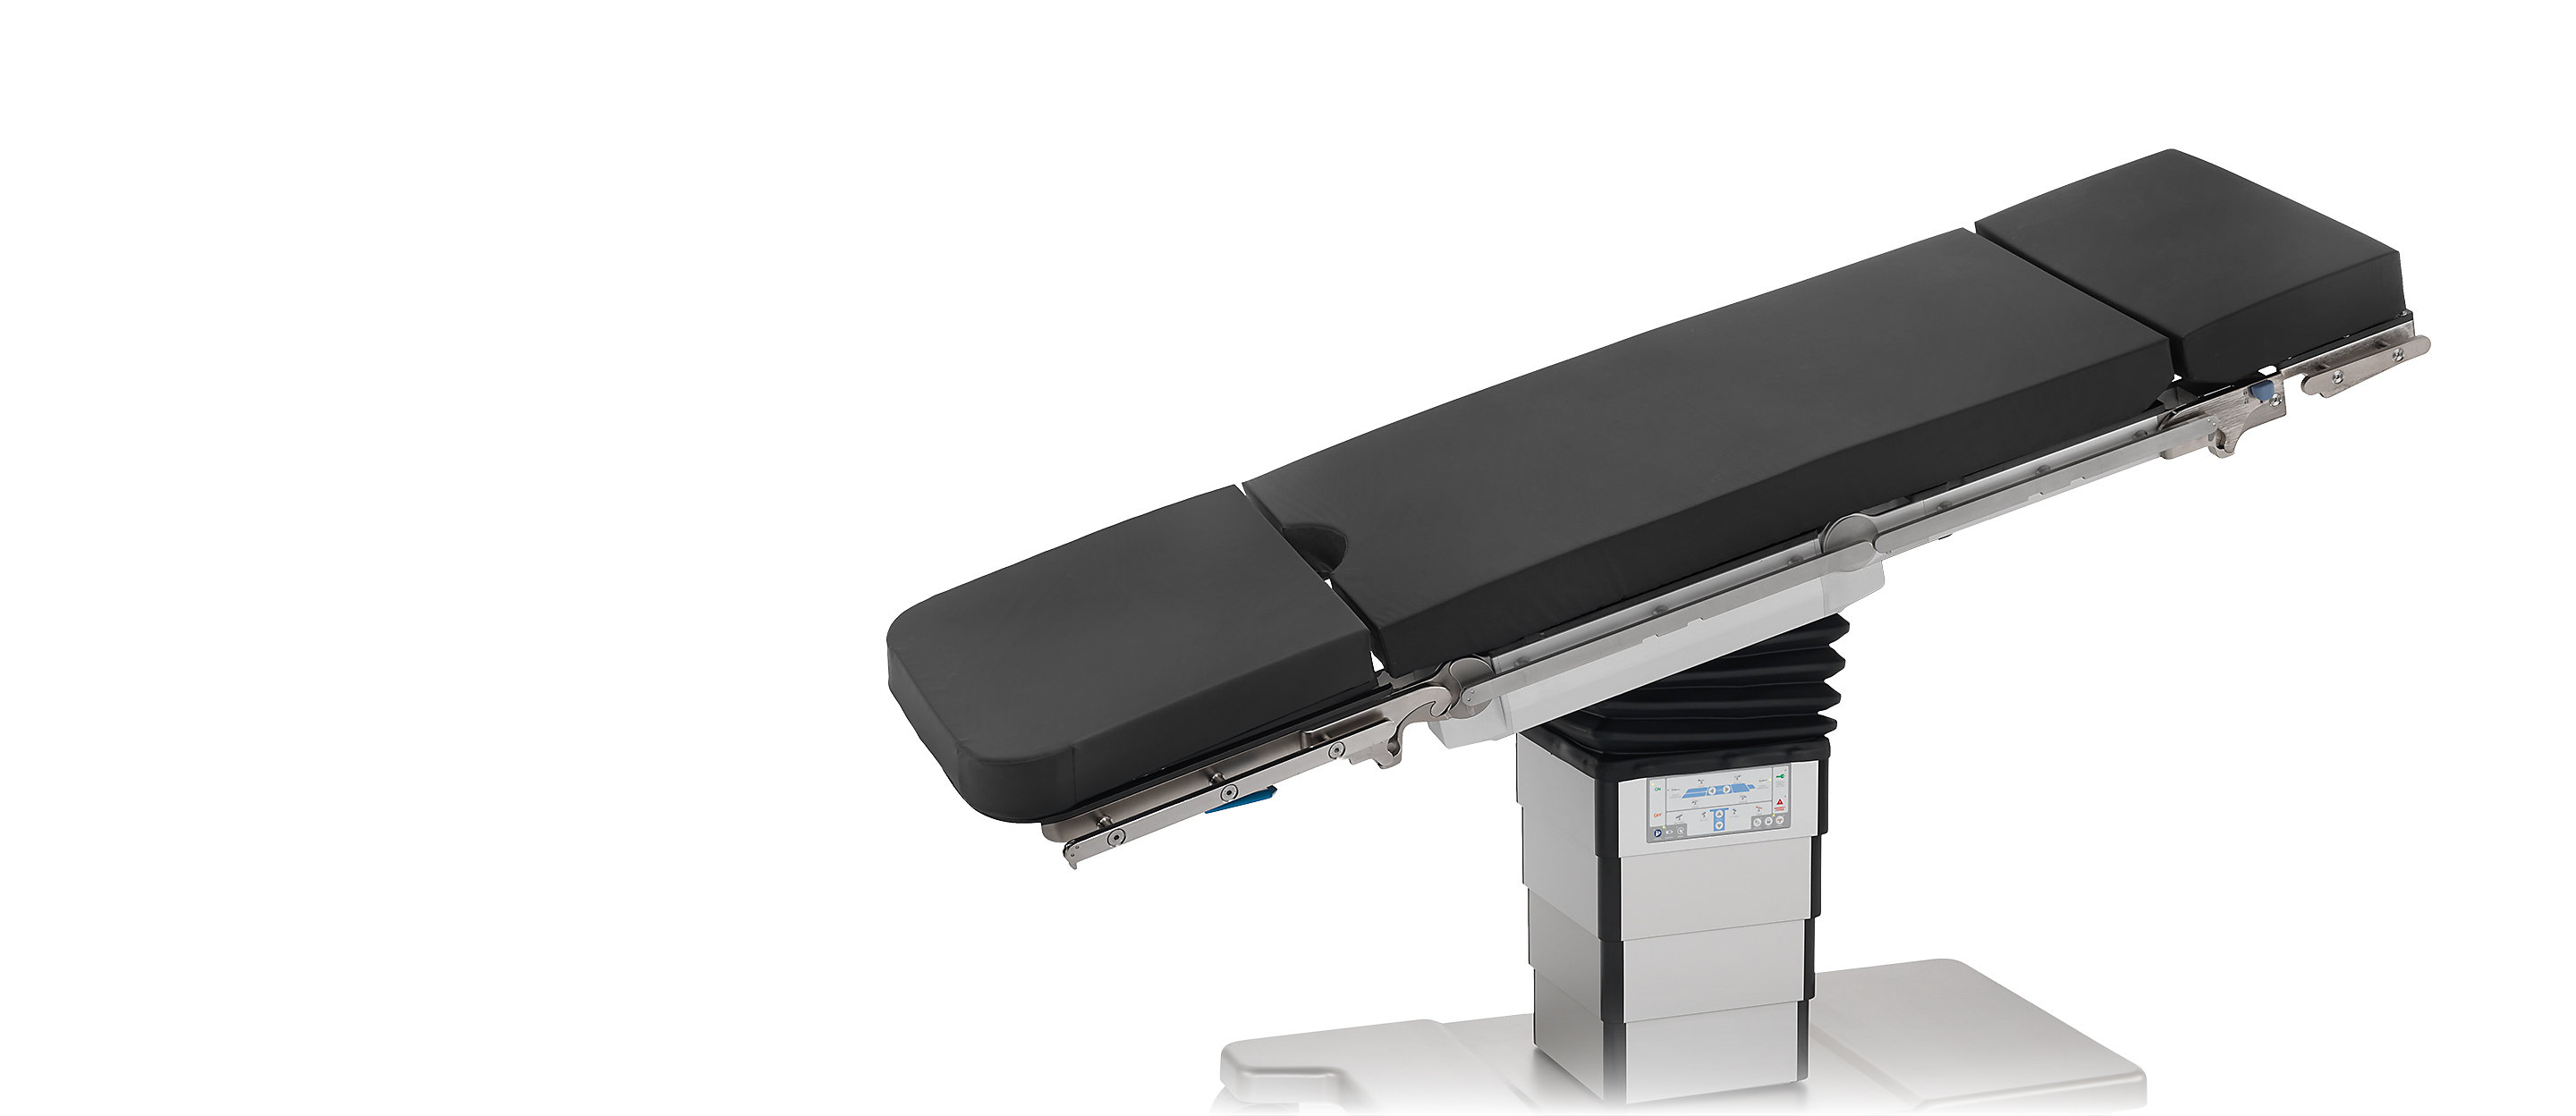 The PST 500 Precision Surgical Table from Hillrom